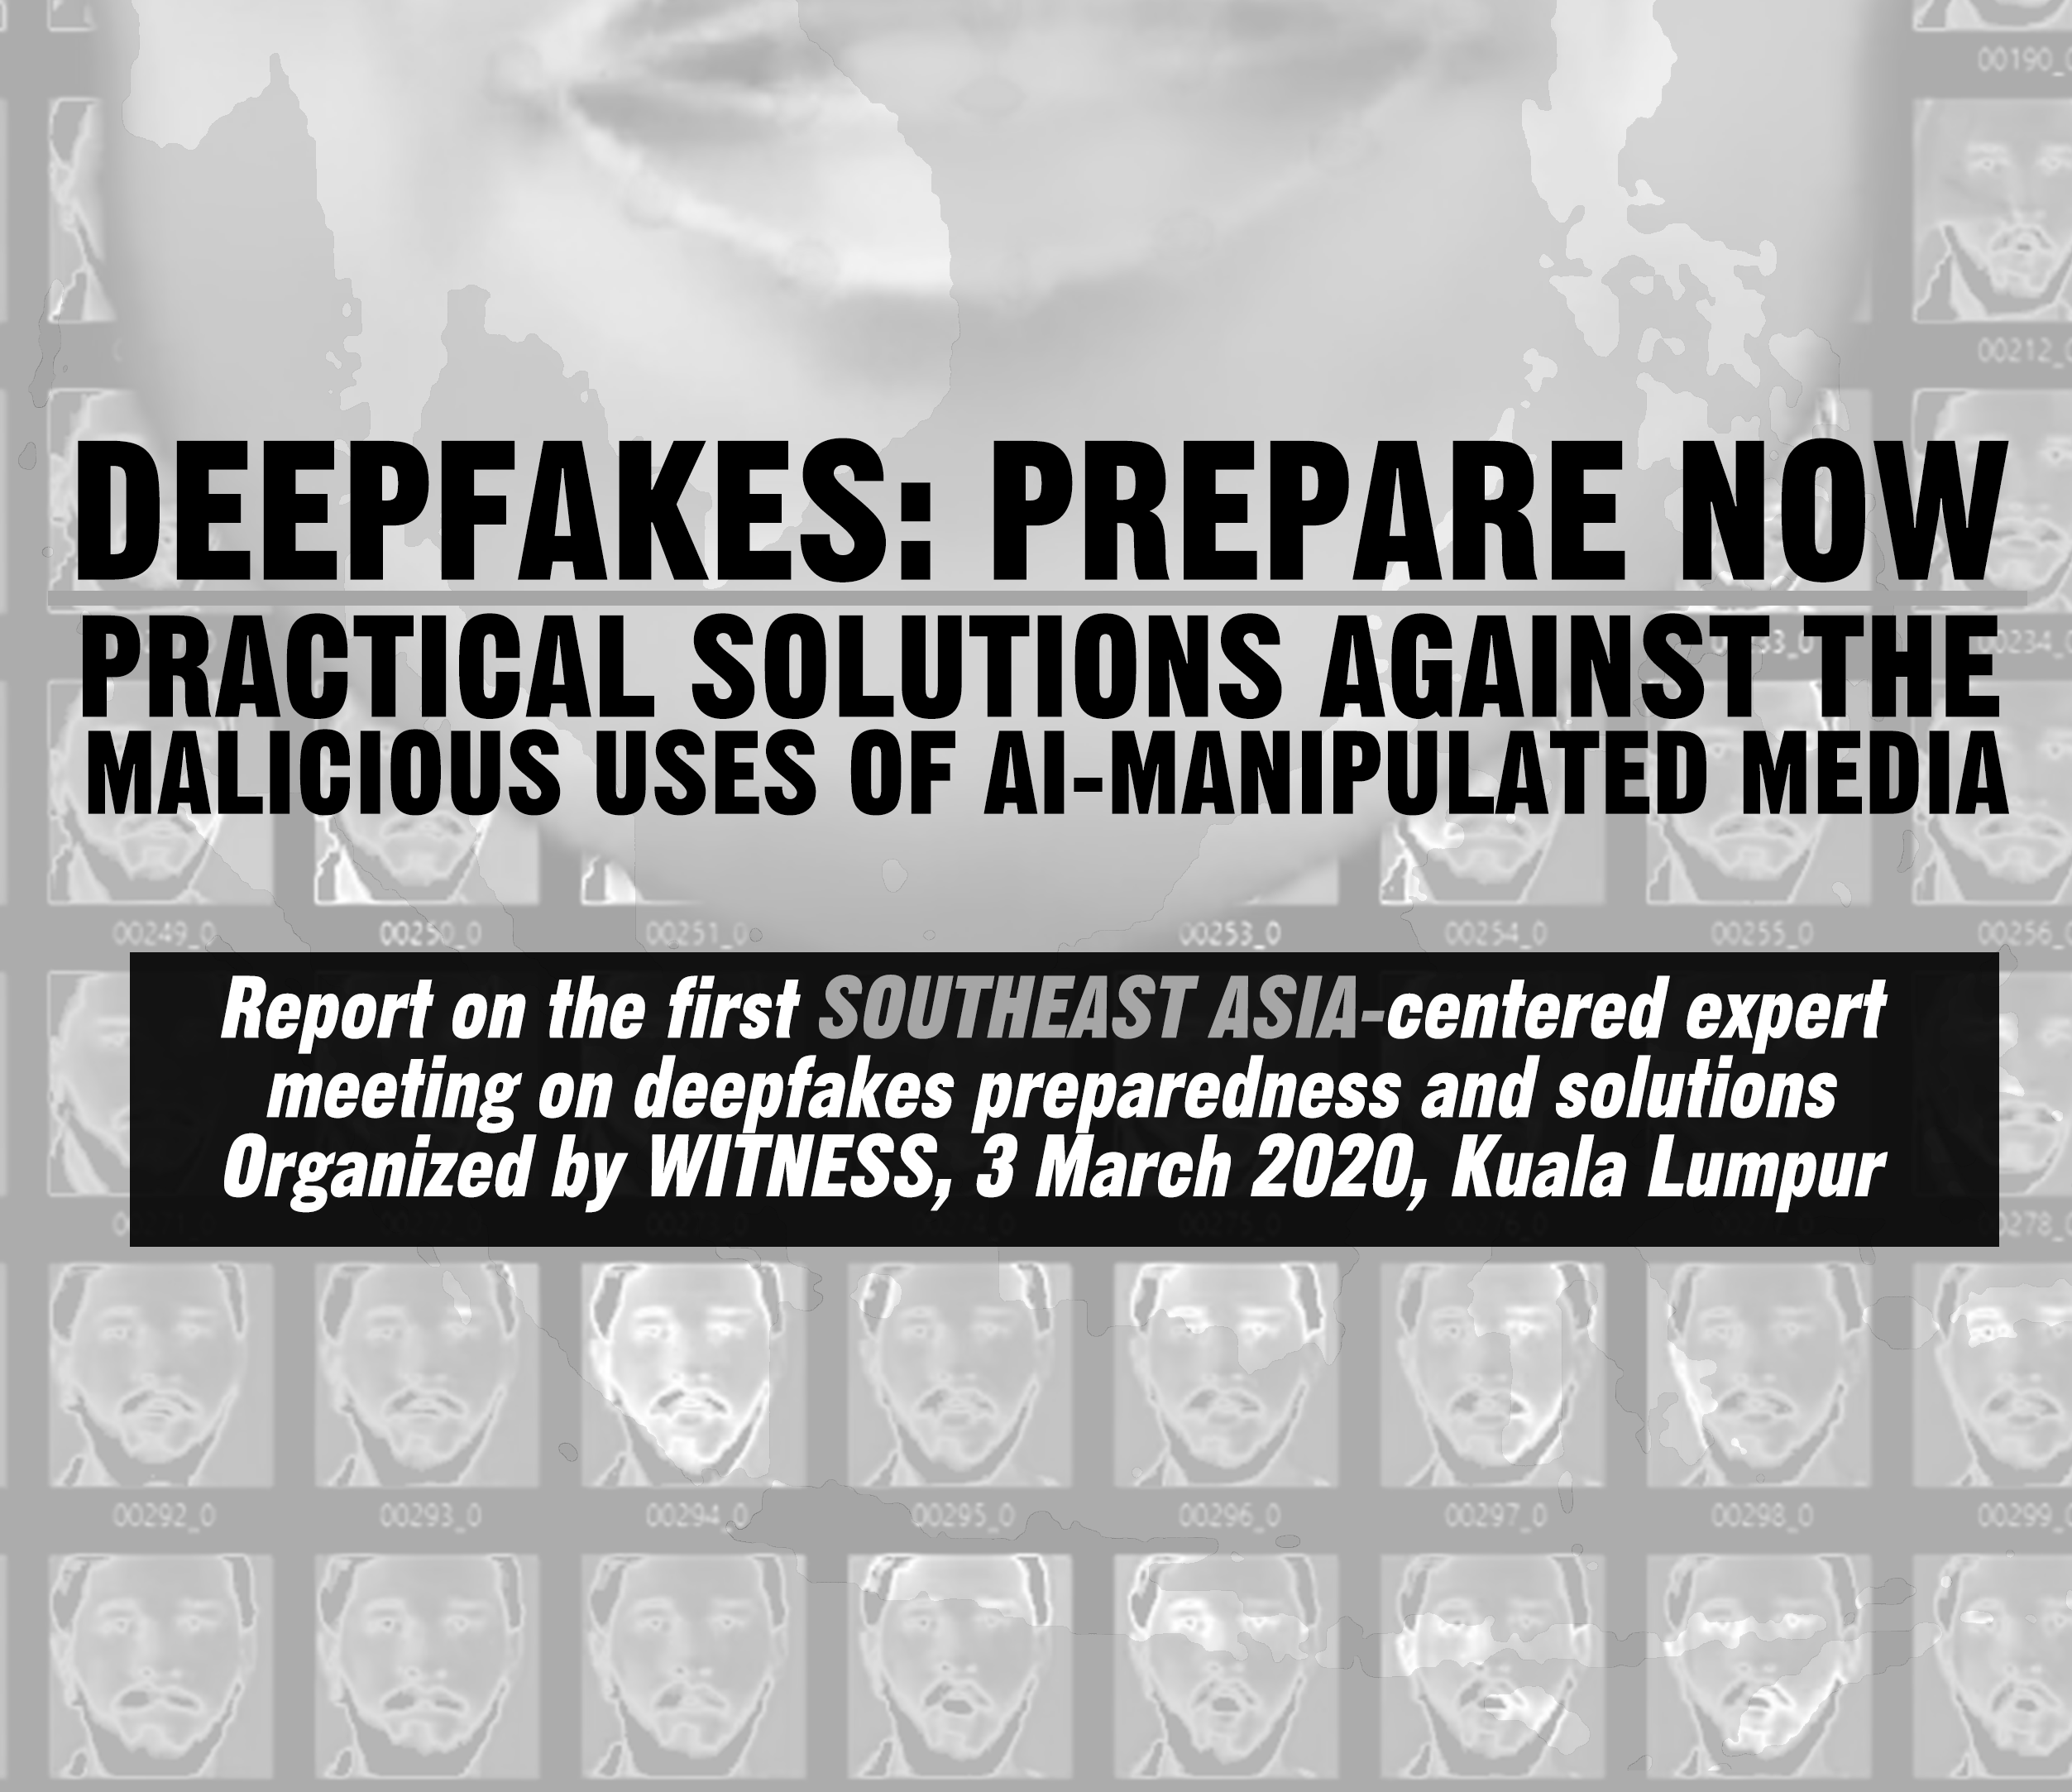 DEEPFAKES PREPARE NOW: REPORT FROM 1st SOUTHEAST ASIA EXPERT MEETING